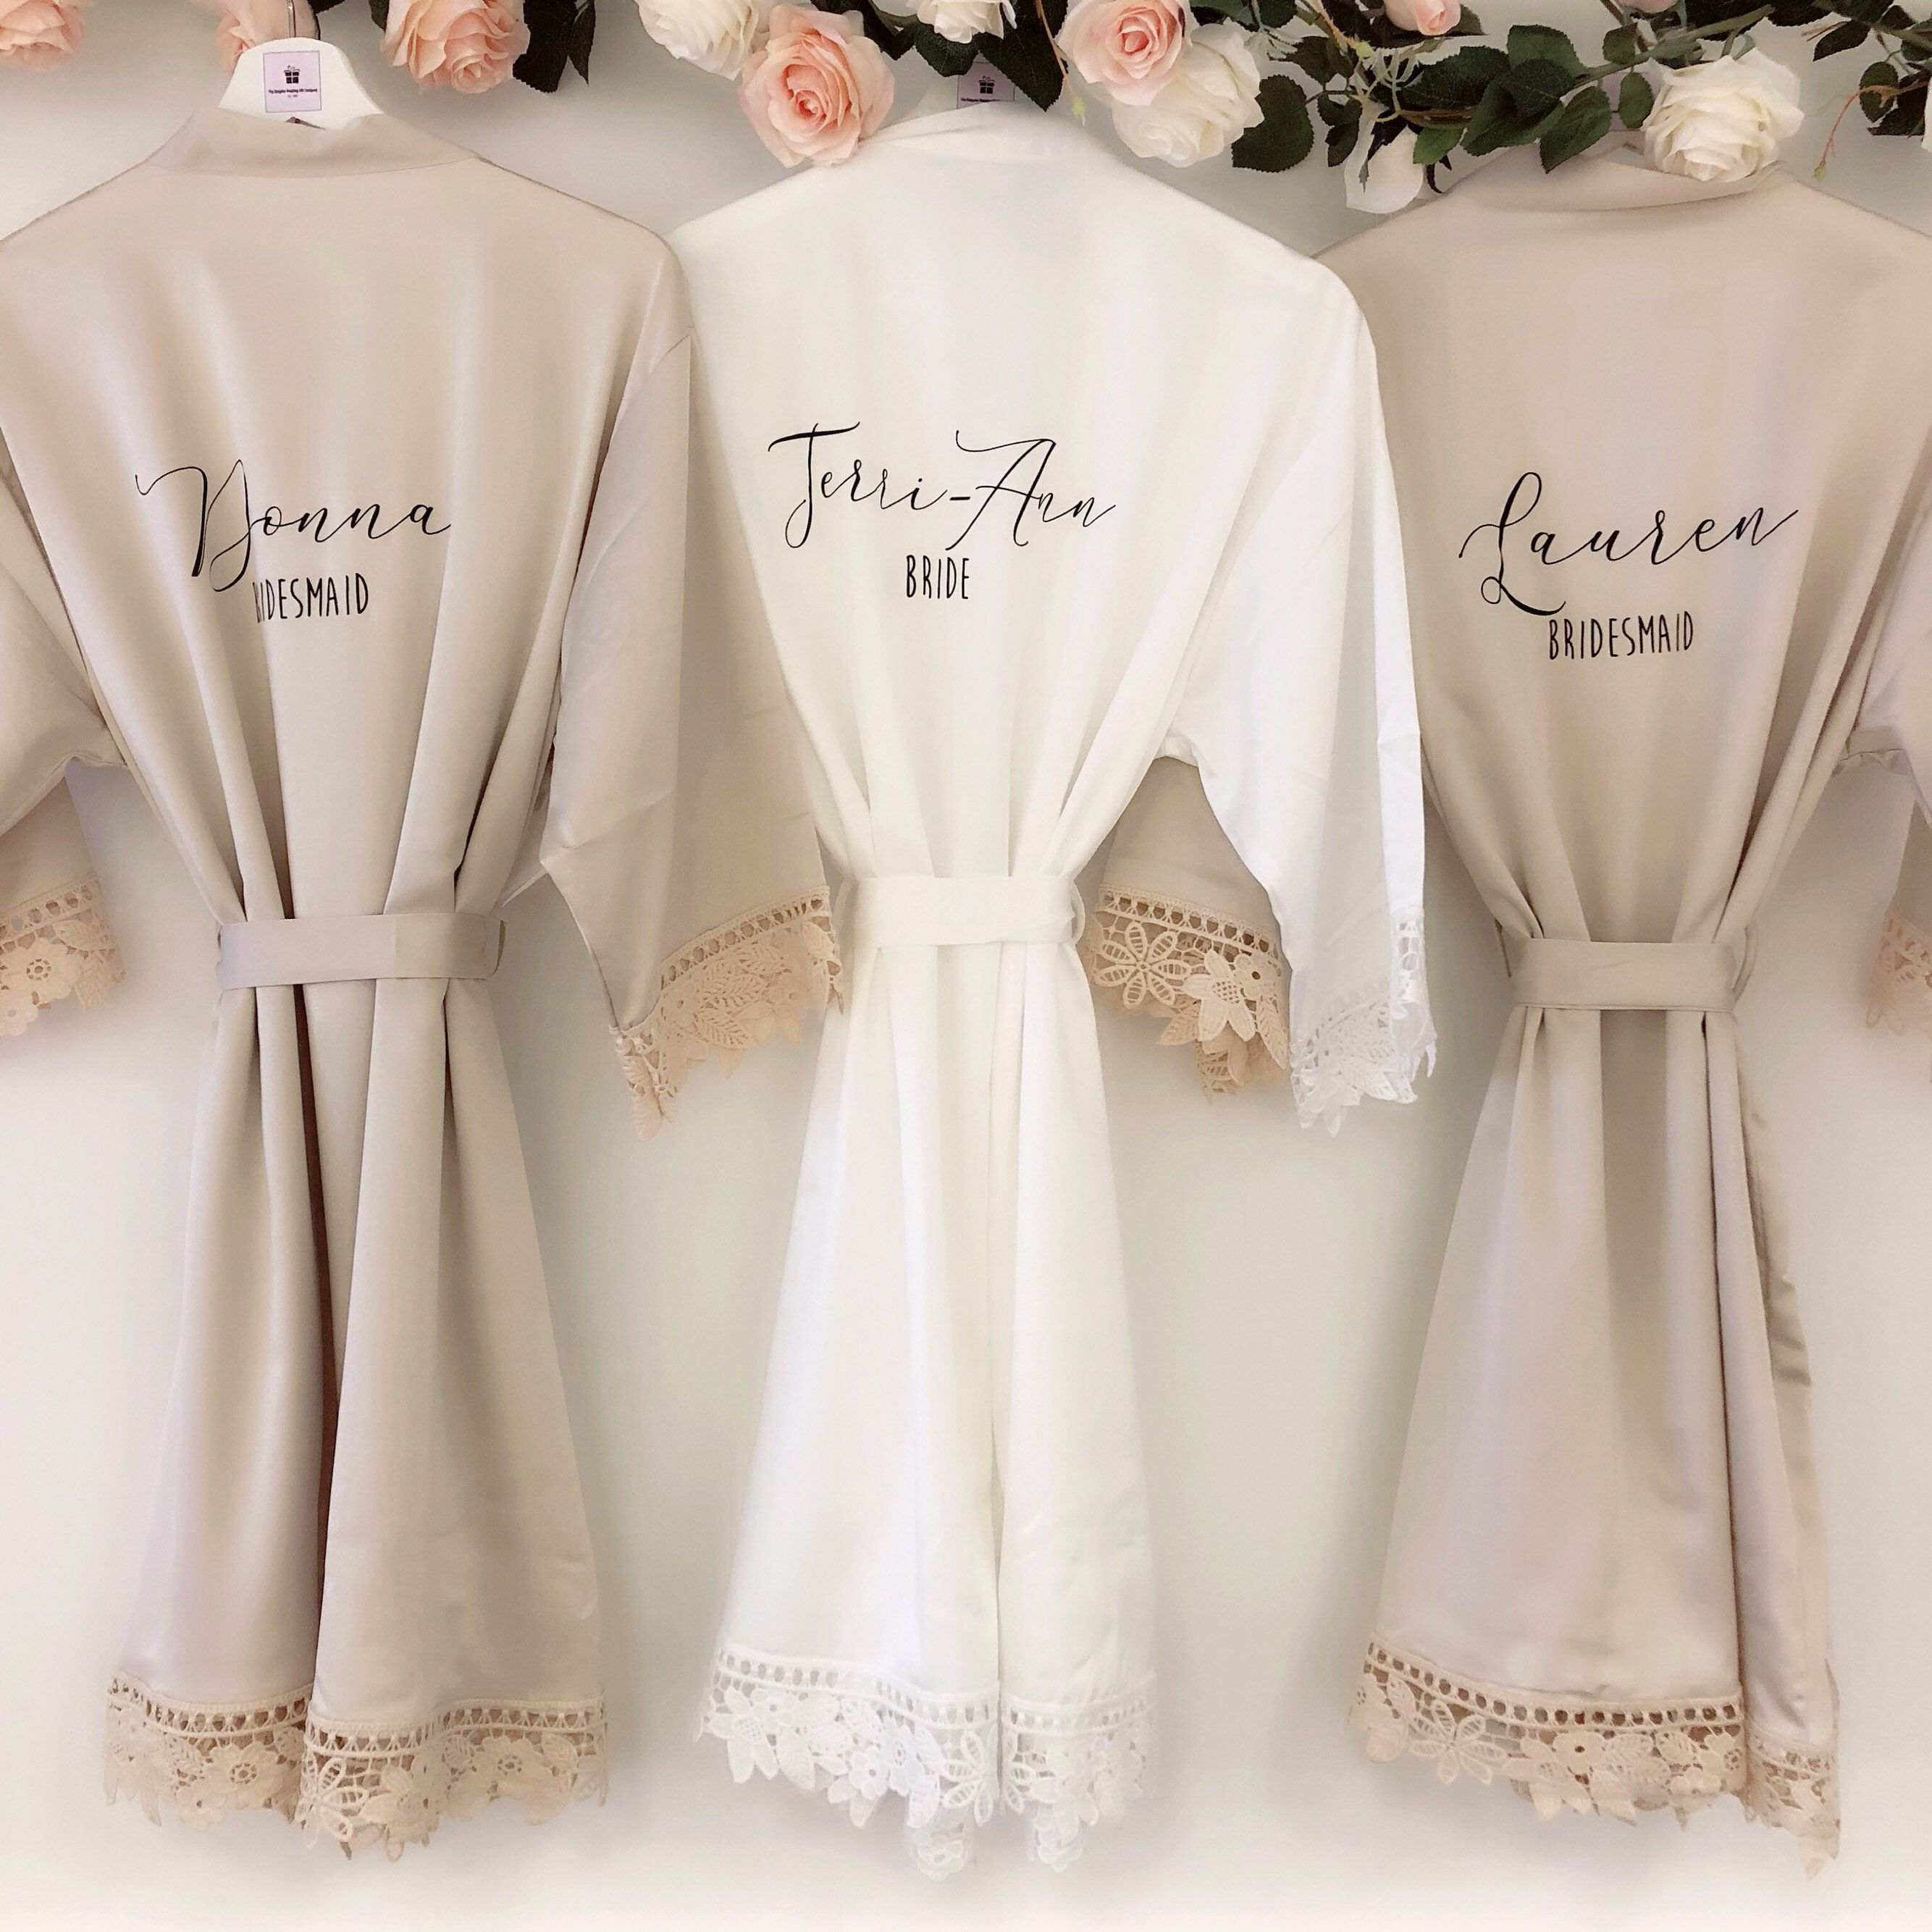 CATHERINE satin and lace bridal robes in standard and plus sizes and child sizes, wedding robe with lace for bridesmaids